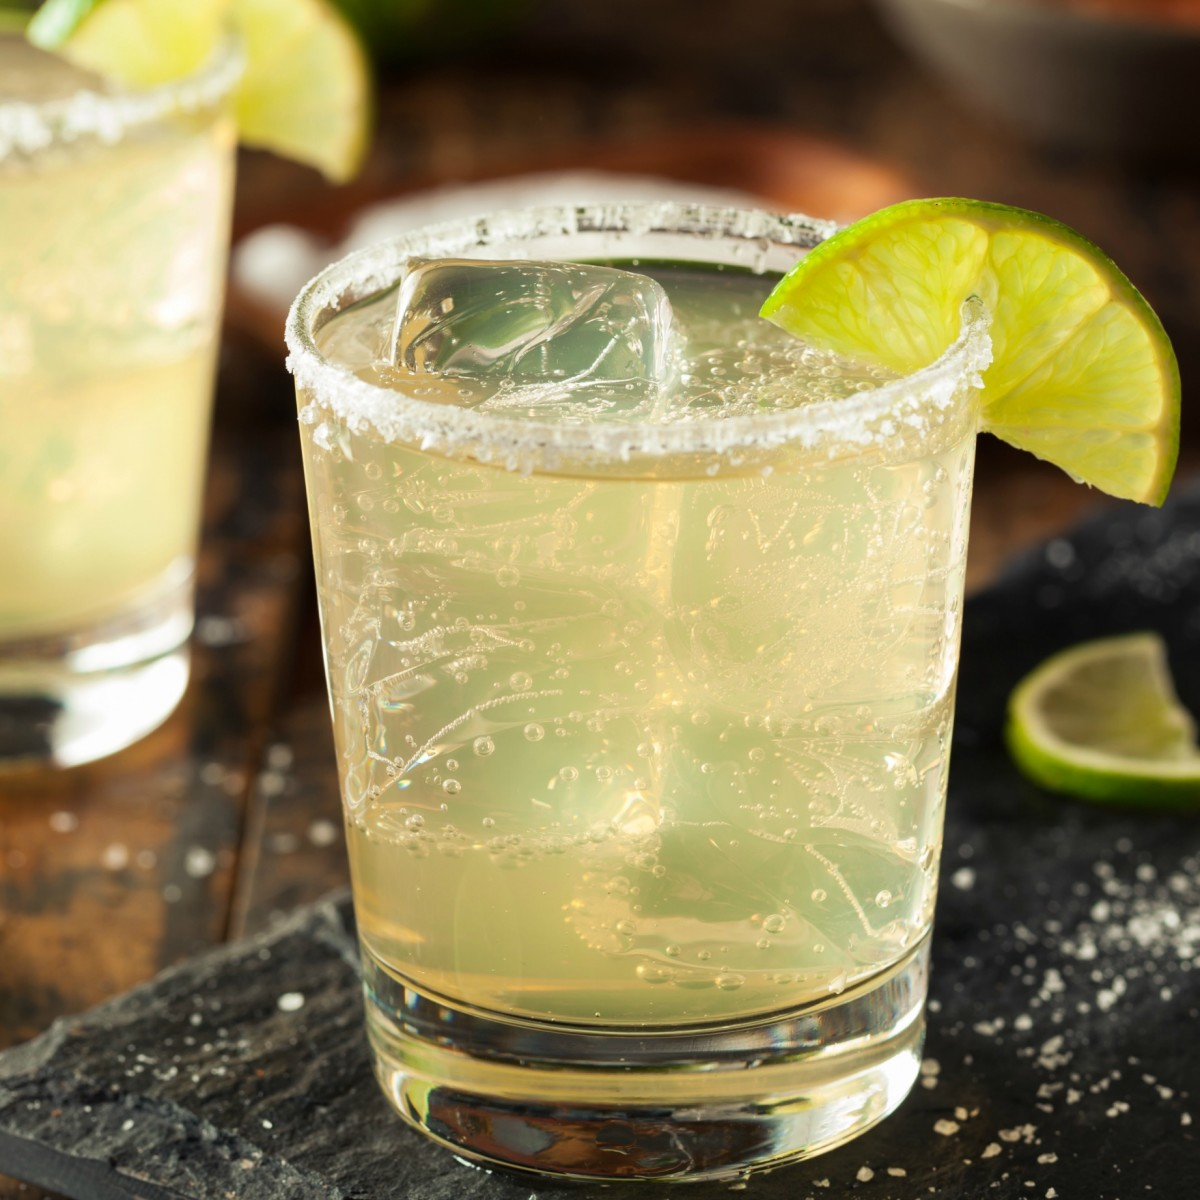 When you're working with high-quality tequila and fresh limes, you really don't need much else to make a legit margarita.